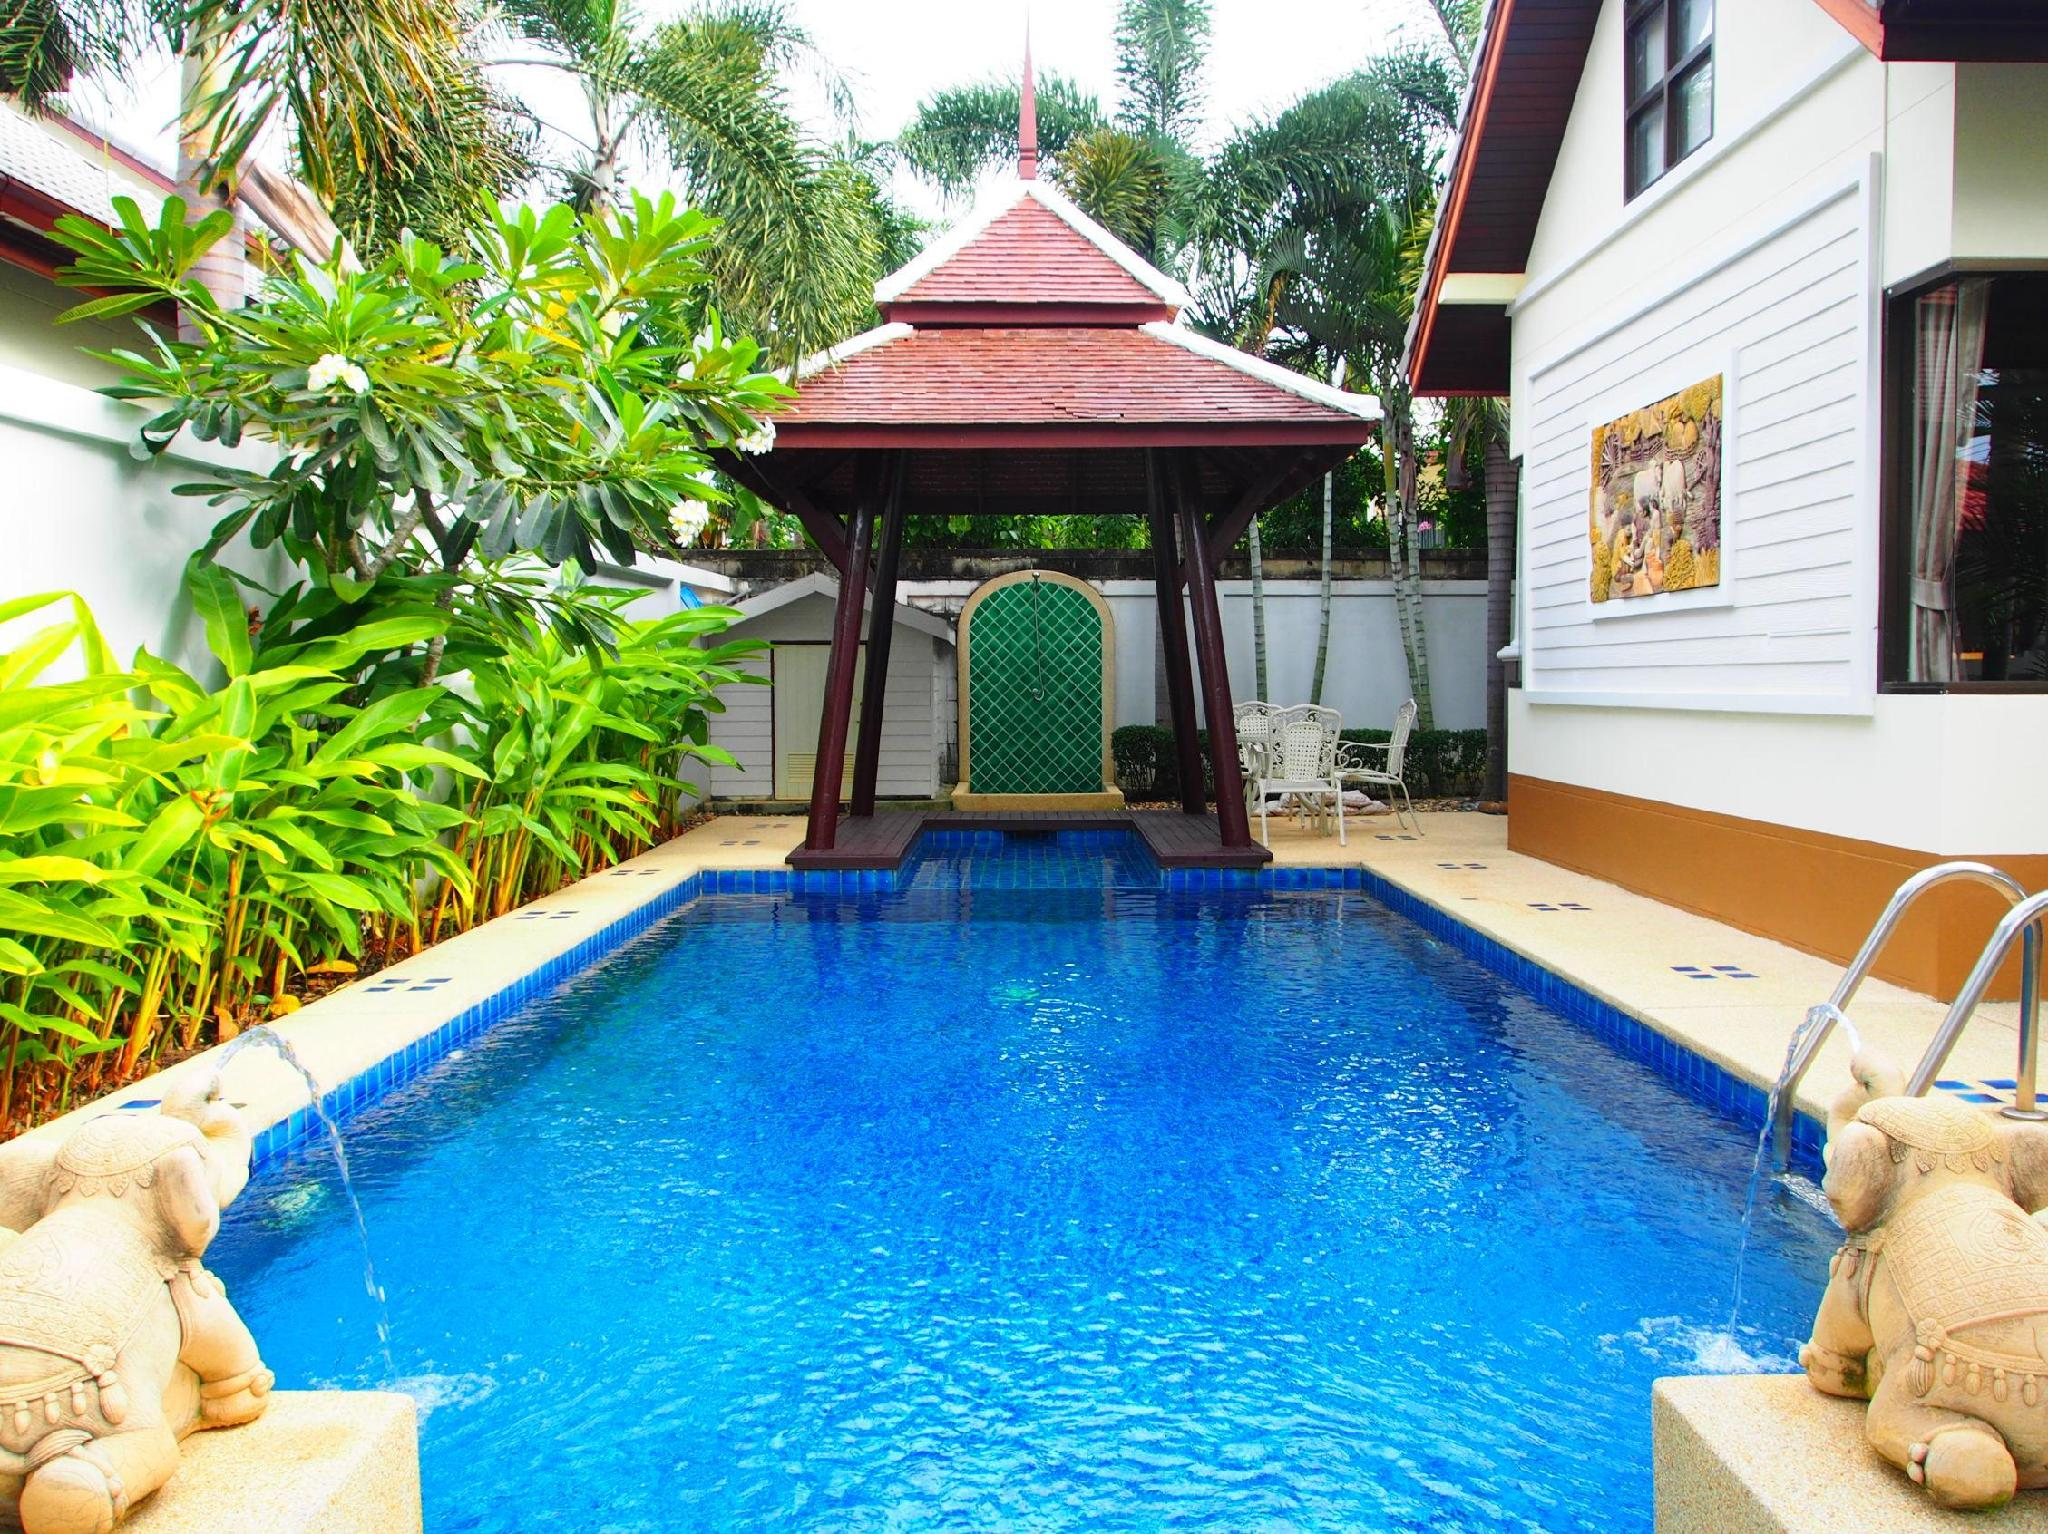 KTK Greenville Pool Villa - Hotels and Accommodation in Thailand, Asia